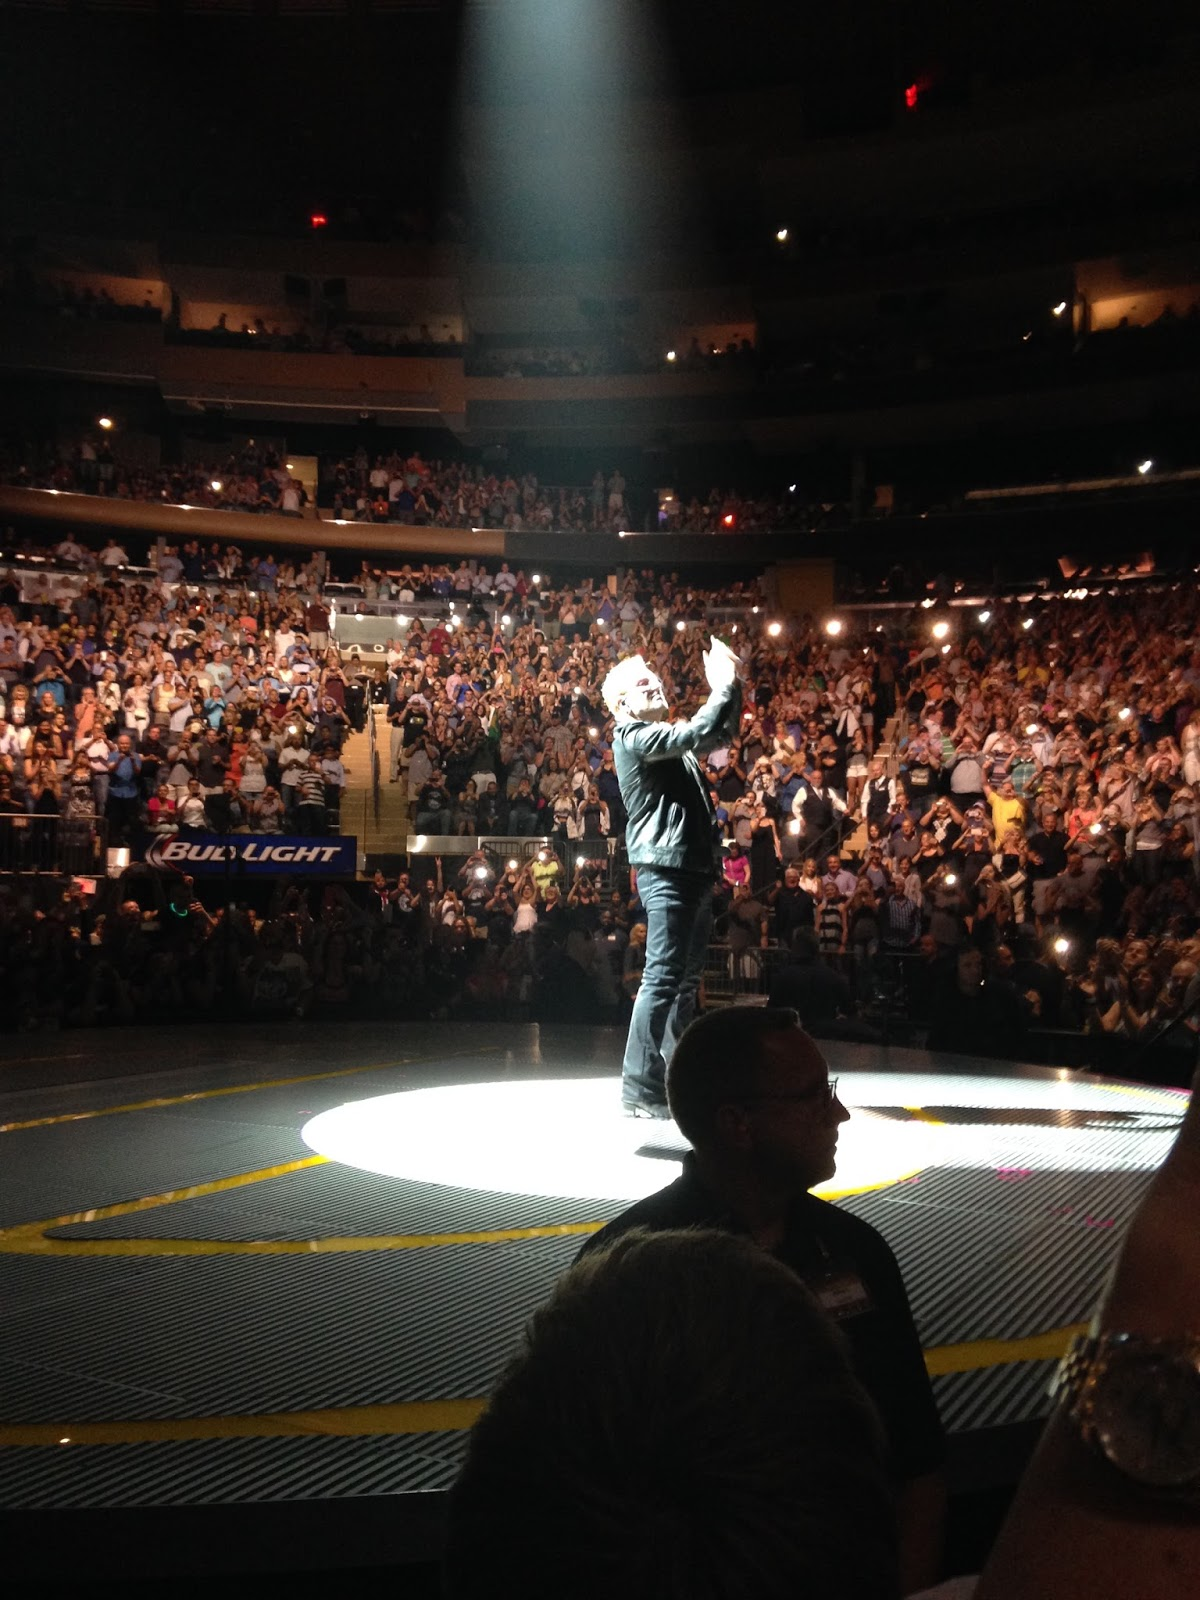 i have spent the last two nights inside madison square garden witnessing the power of u2s current innocence experience tour the tour is currently at the - U2 At Madison Square Garden